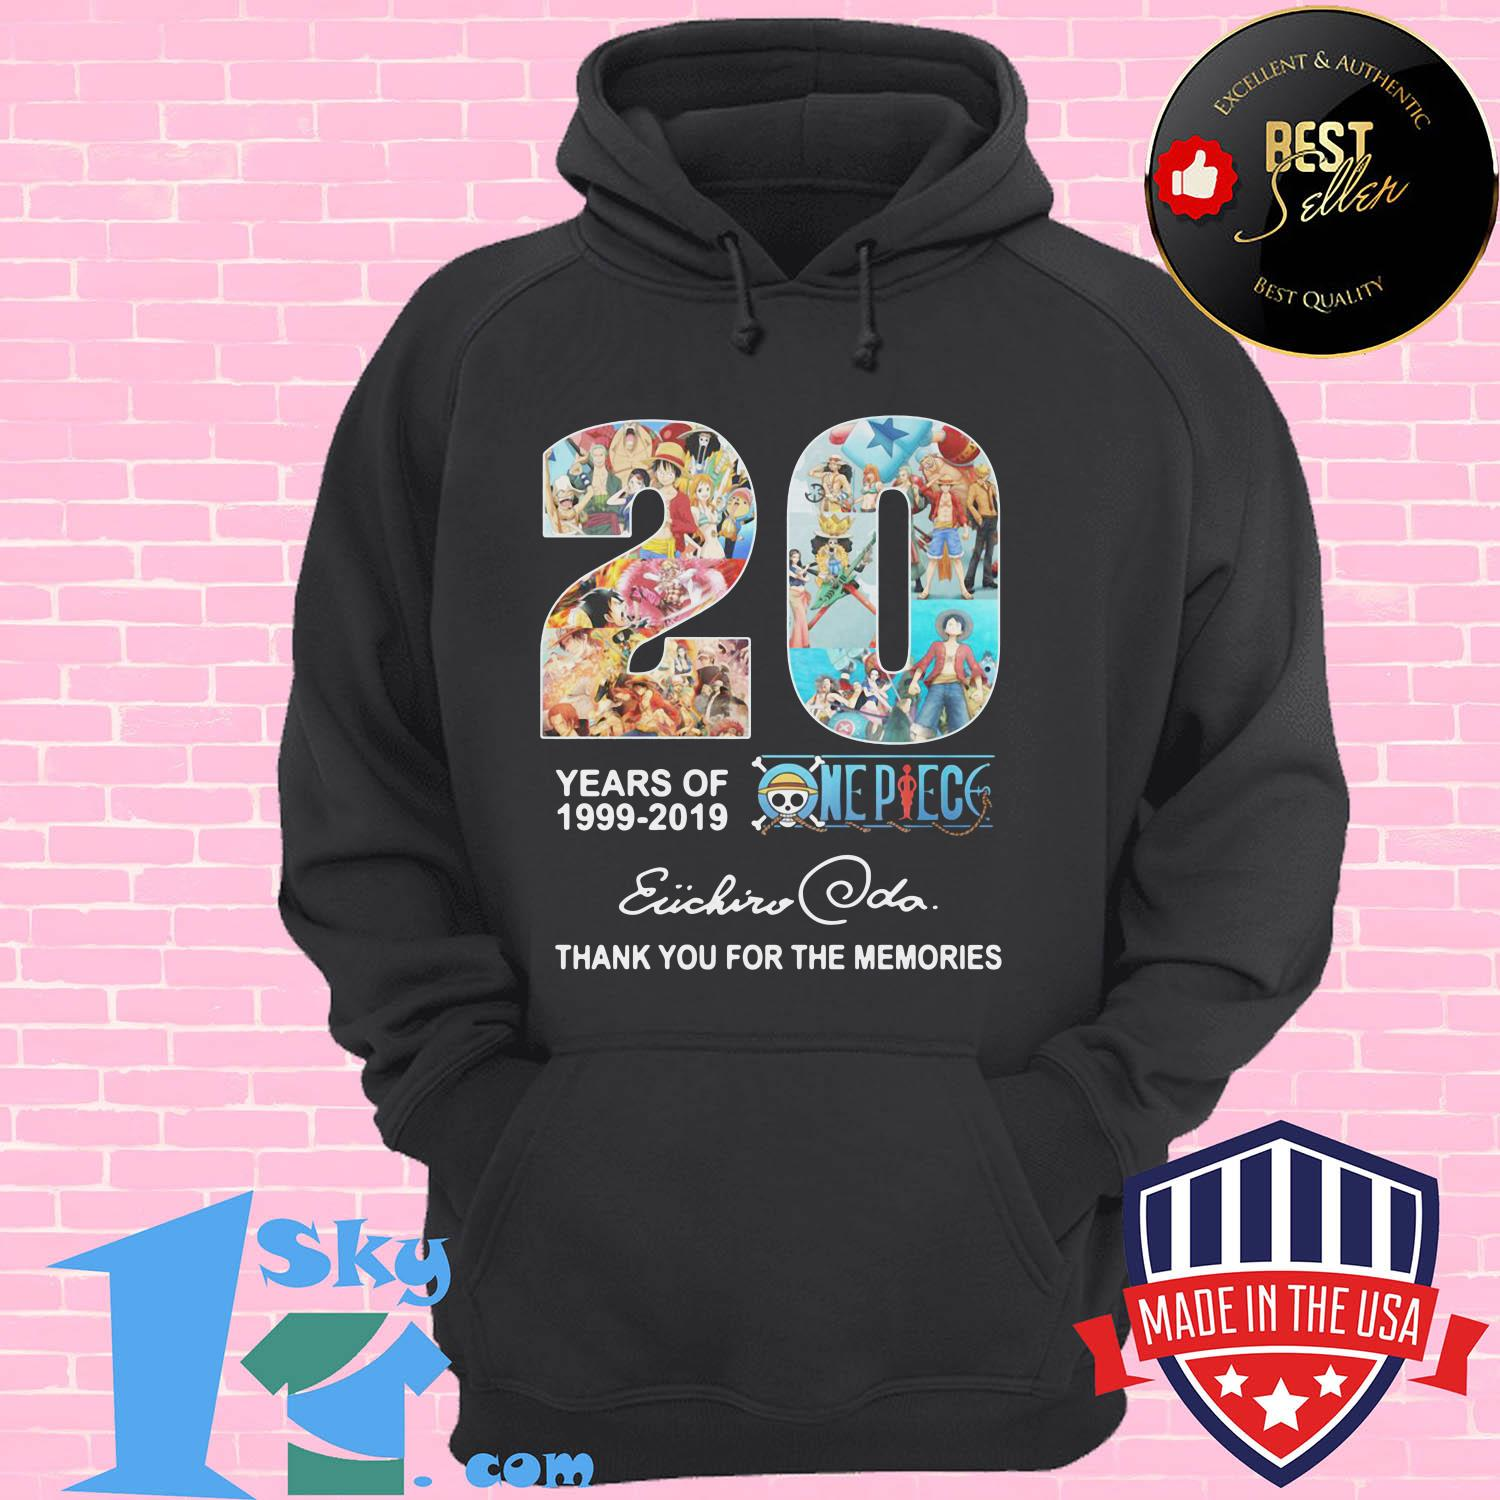 20 year of one piece anime anniversary 1999 2019 eiichiro oda hoodie - 20 year of One Piece Anime anniversary 1999 2019 Eiichiro Oda shirt